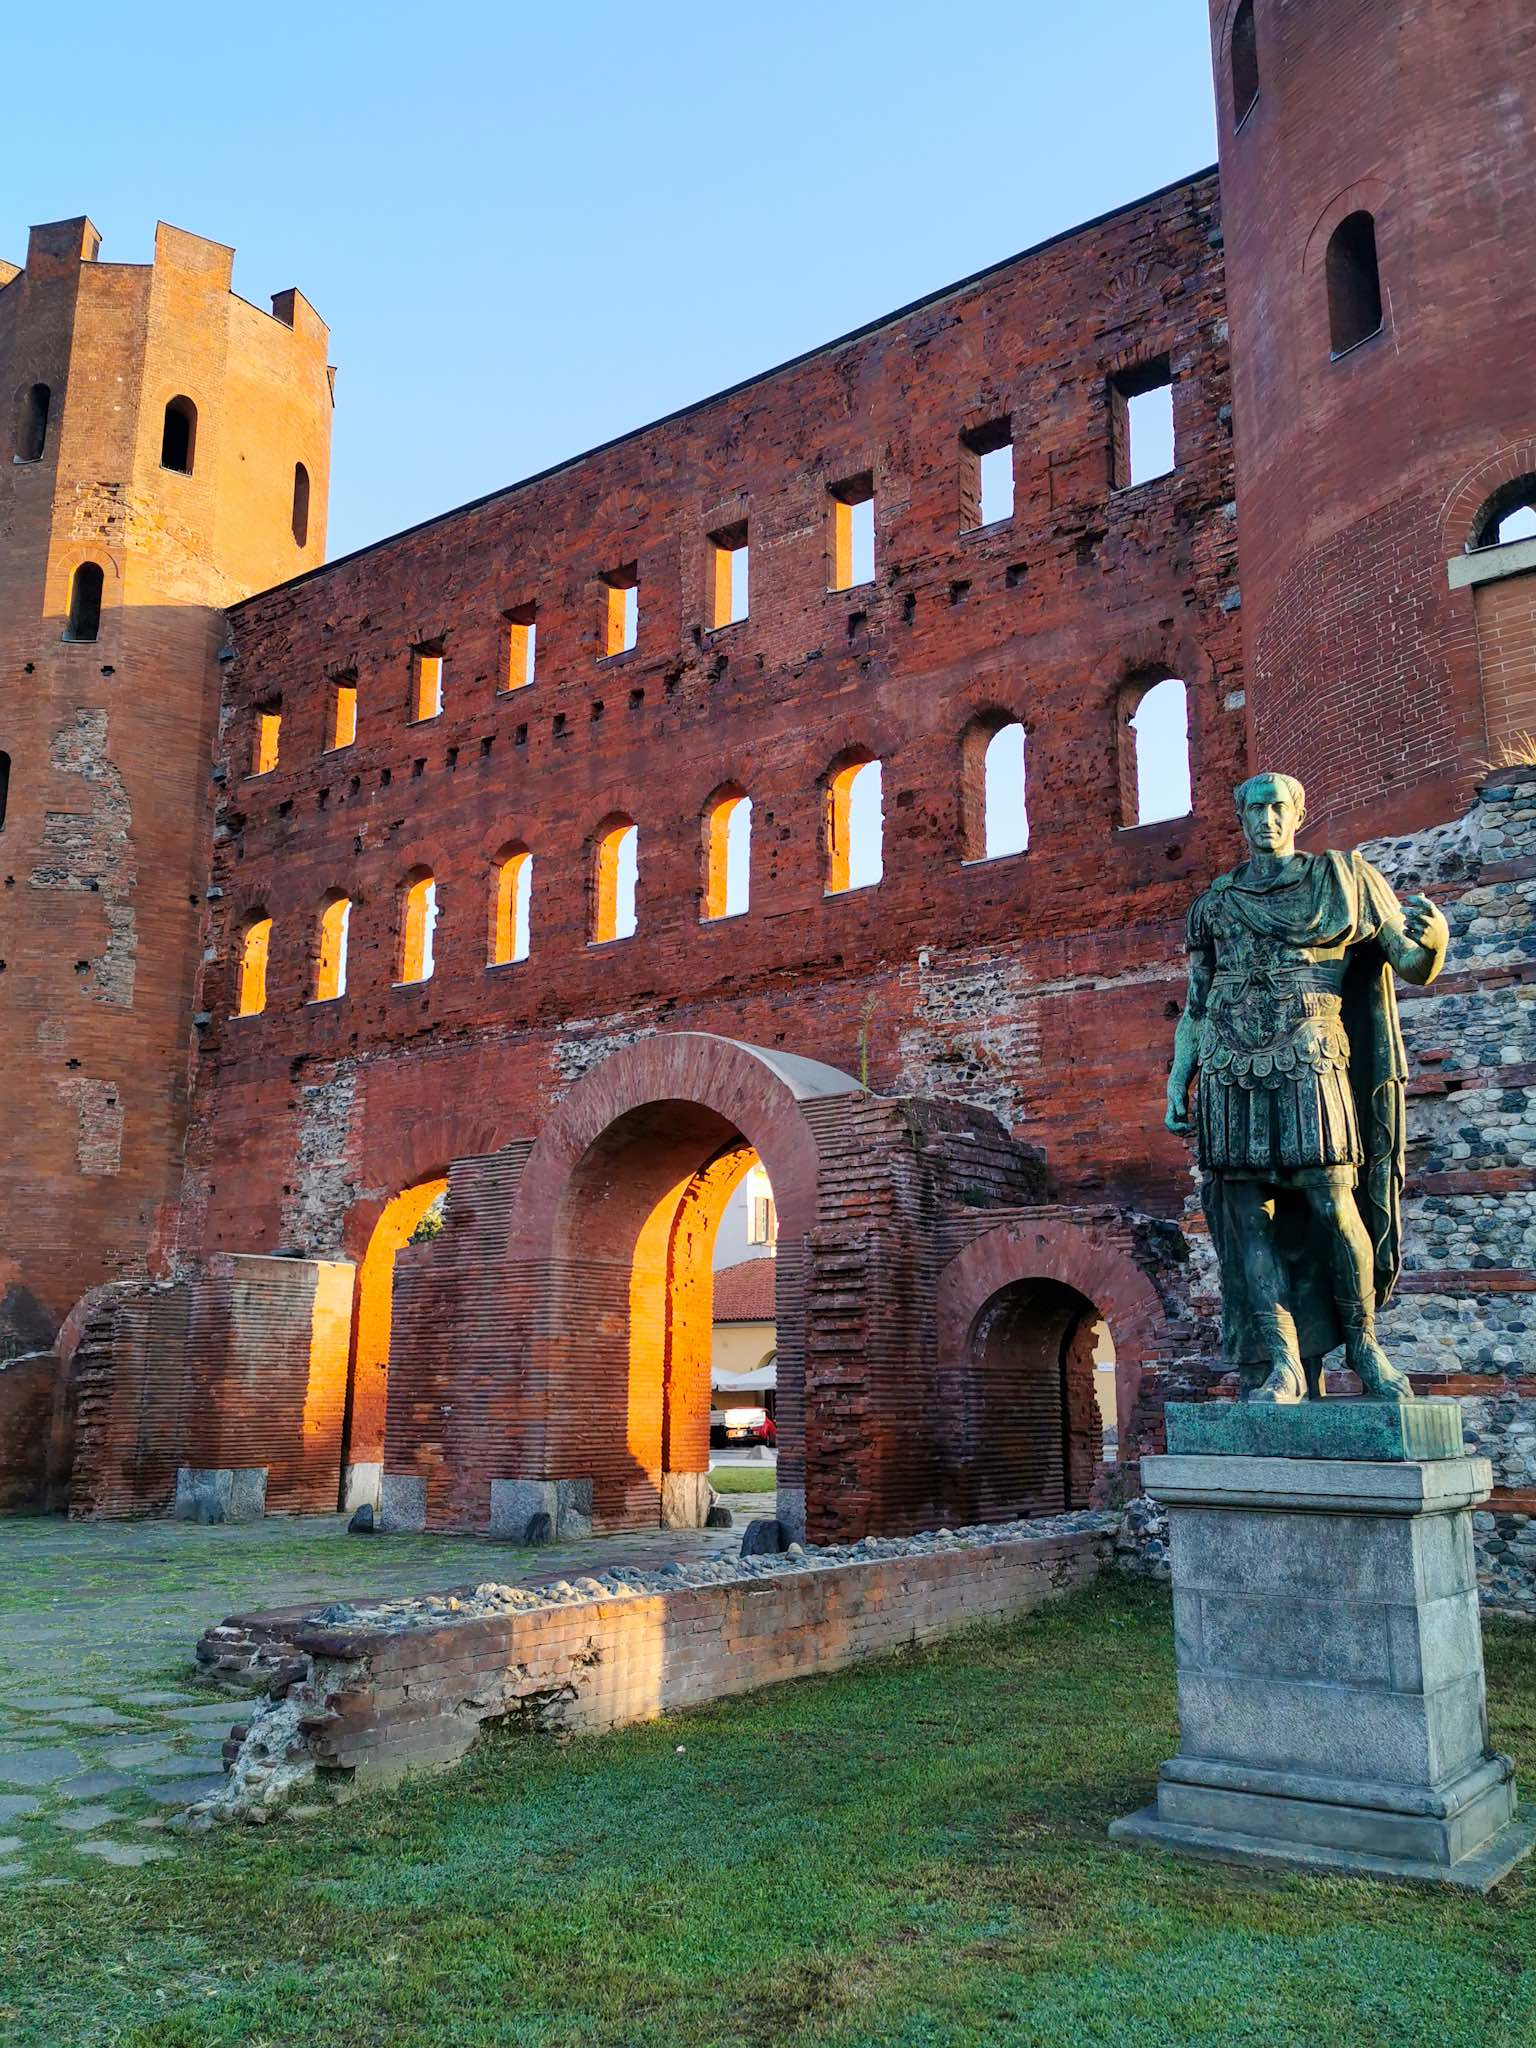 Turin's Porta Palatina, a beautifully preserved red-brick Roman gate guarded by the statues of Augustus and Caesar